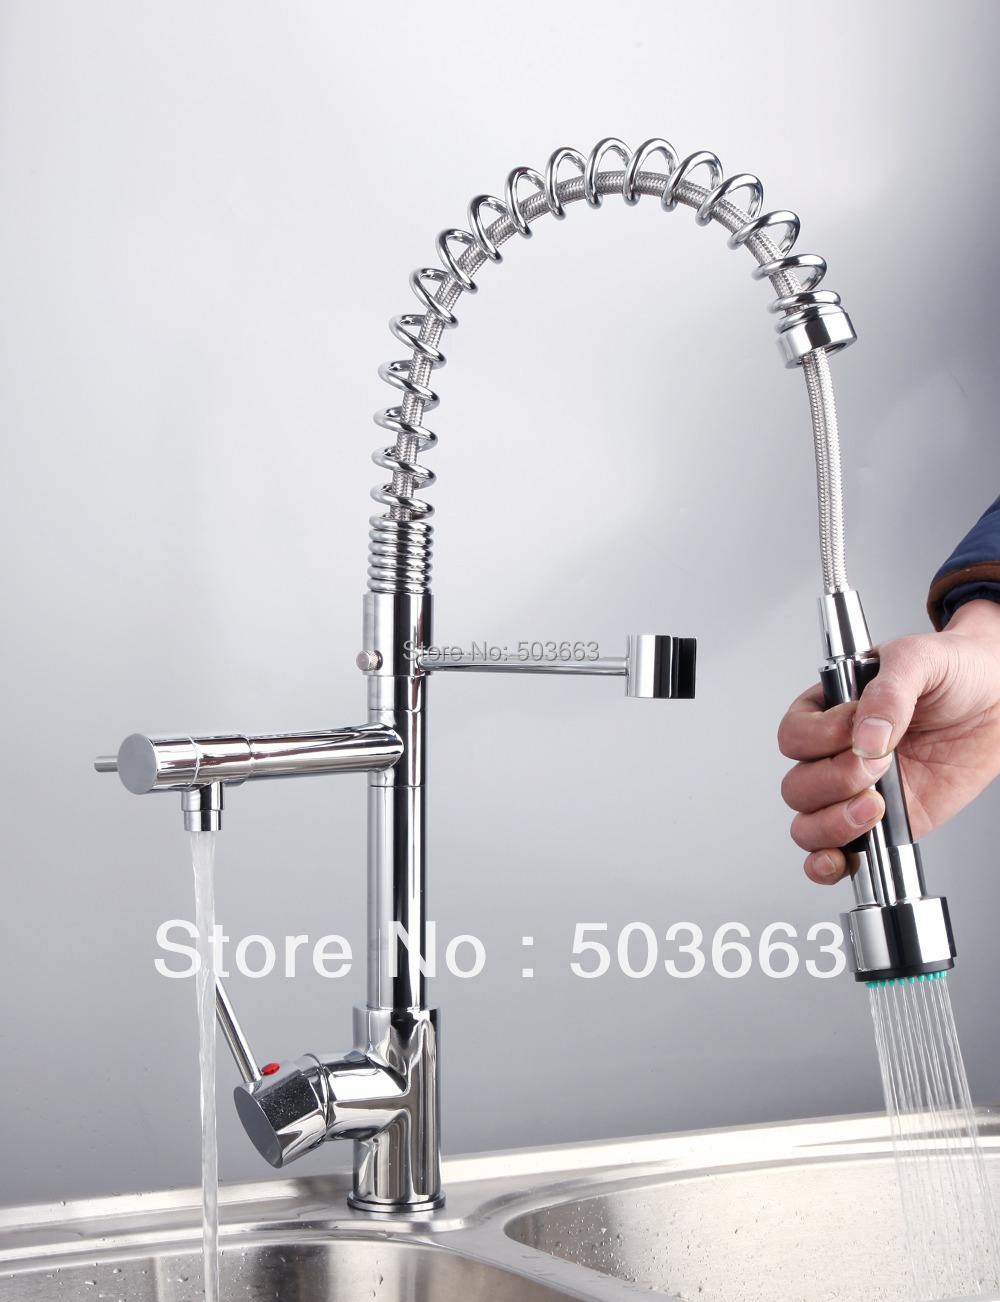 Newly Free Wholesale Retail Chrome Brass Water Kitchen Faucet Swivel Spout Pull Out Vessel Sink Single Handle Mixer Tap MF-266 double handles free chrome brass water kitchen faucet swivel spout pull out vessel sink single handle mixer tap mf 268